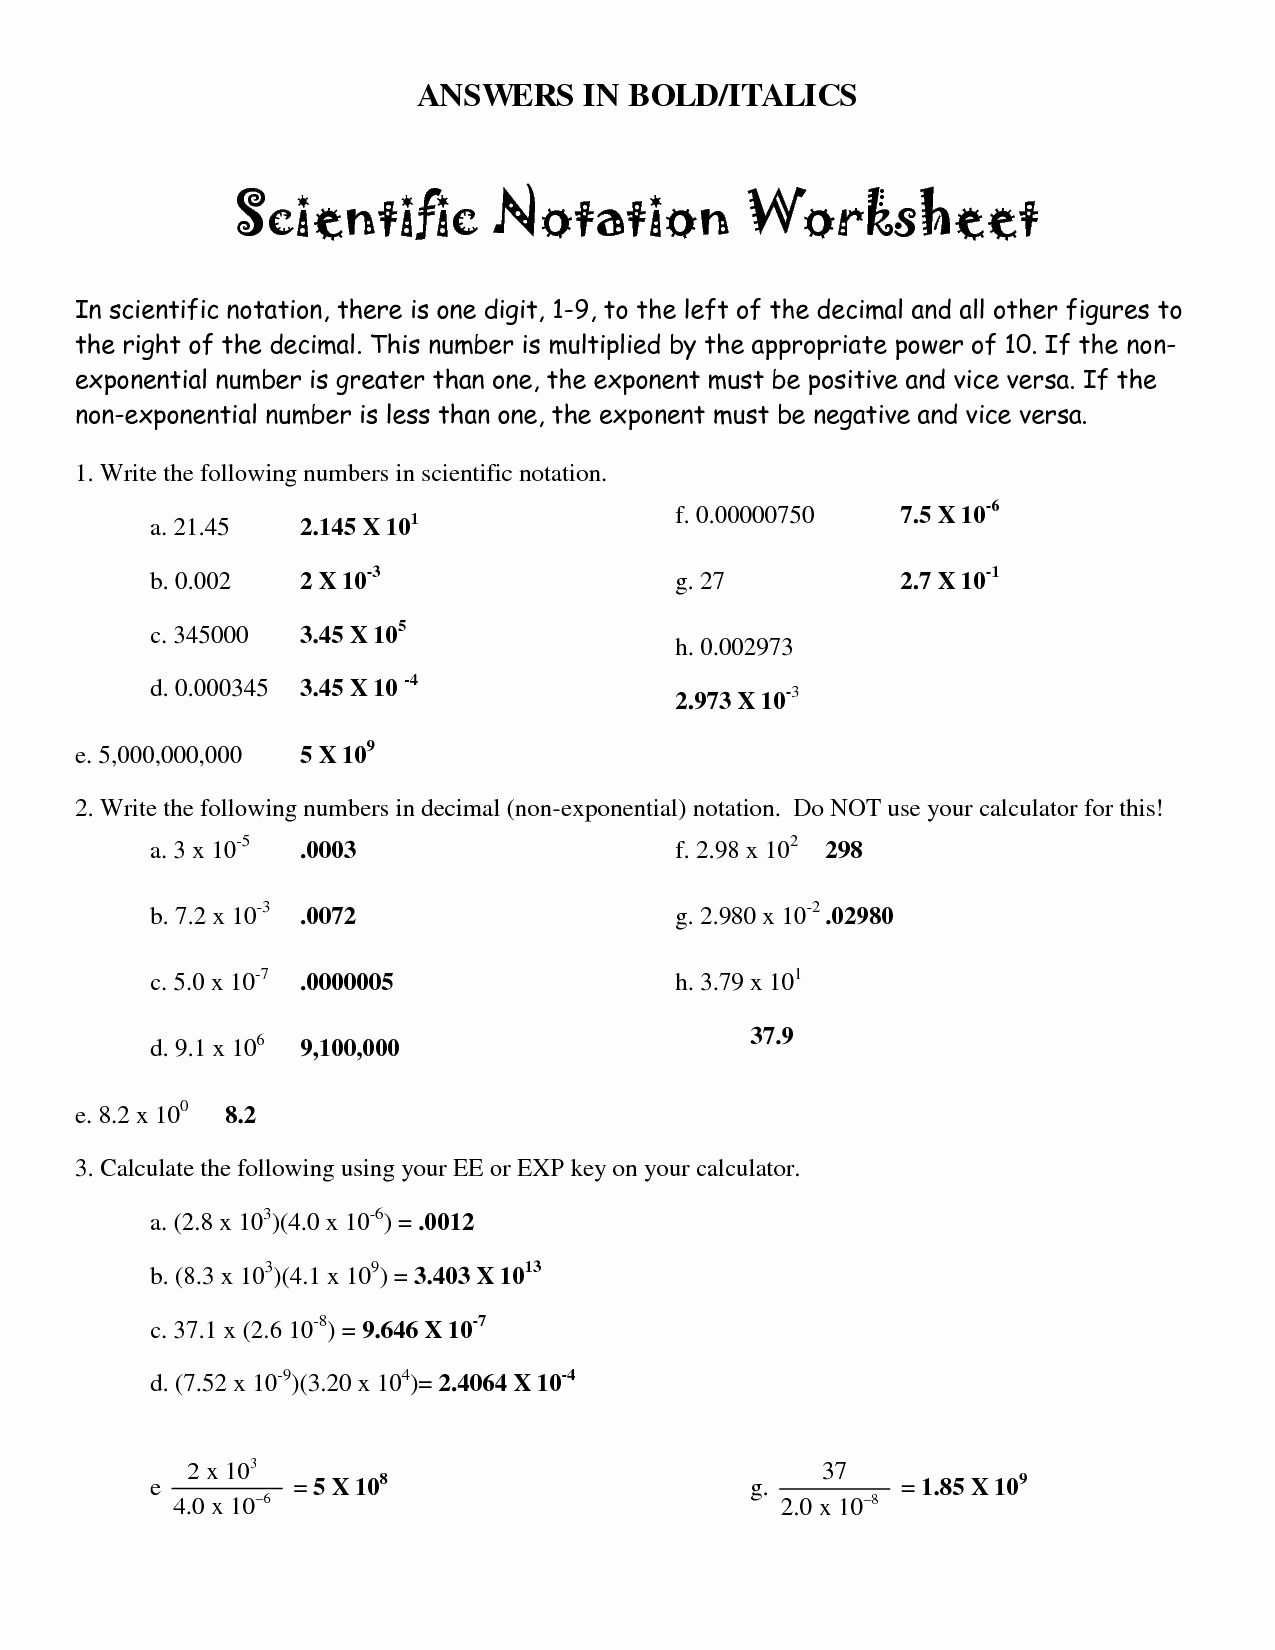 50 Scientific Notation Worksheet With Answers In